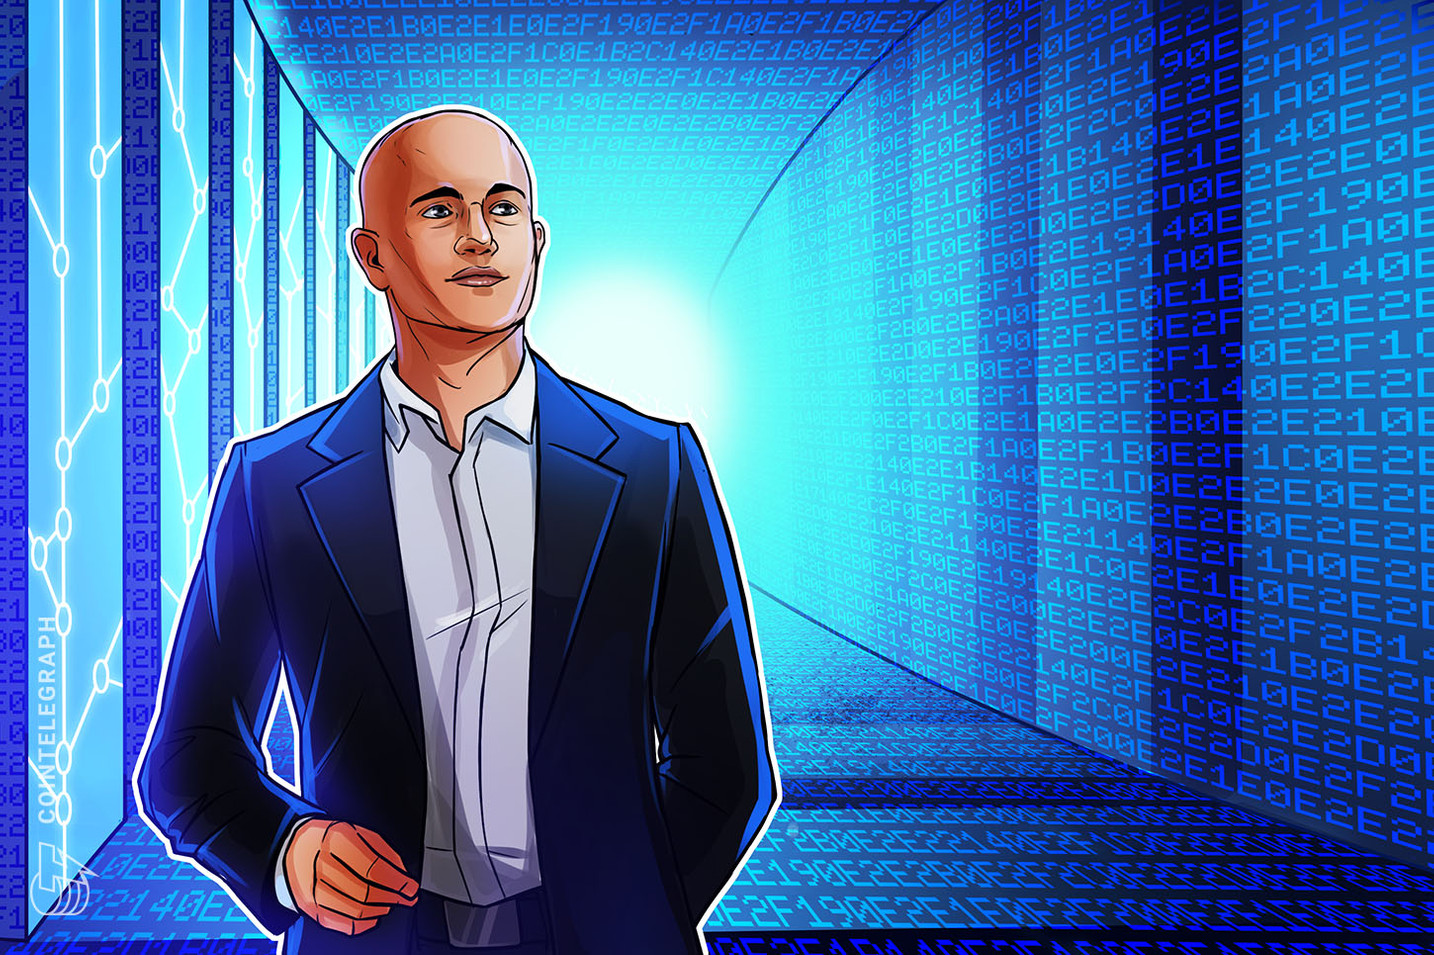 Coinbase's Reddit AMA: 'It's like Amazon in the early days'